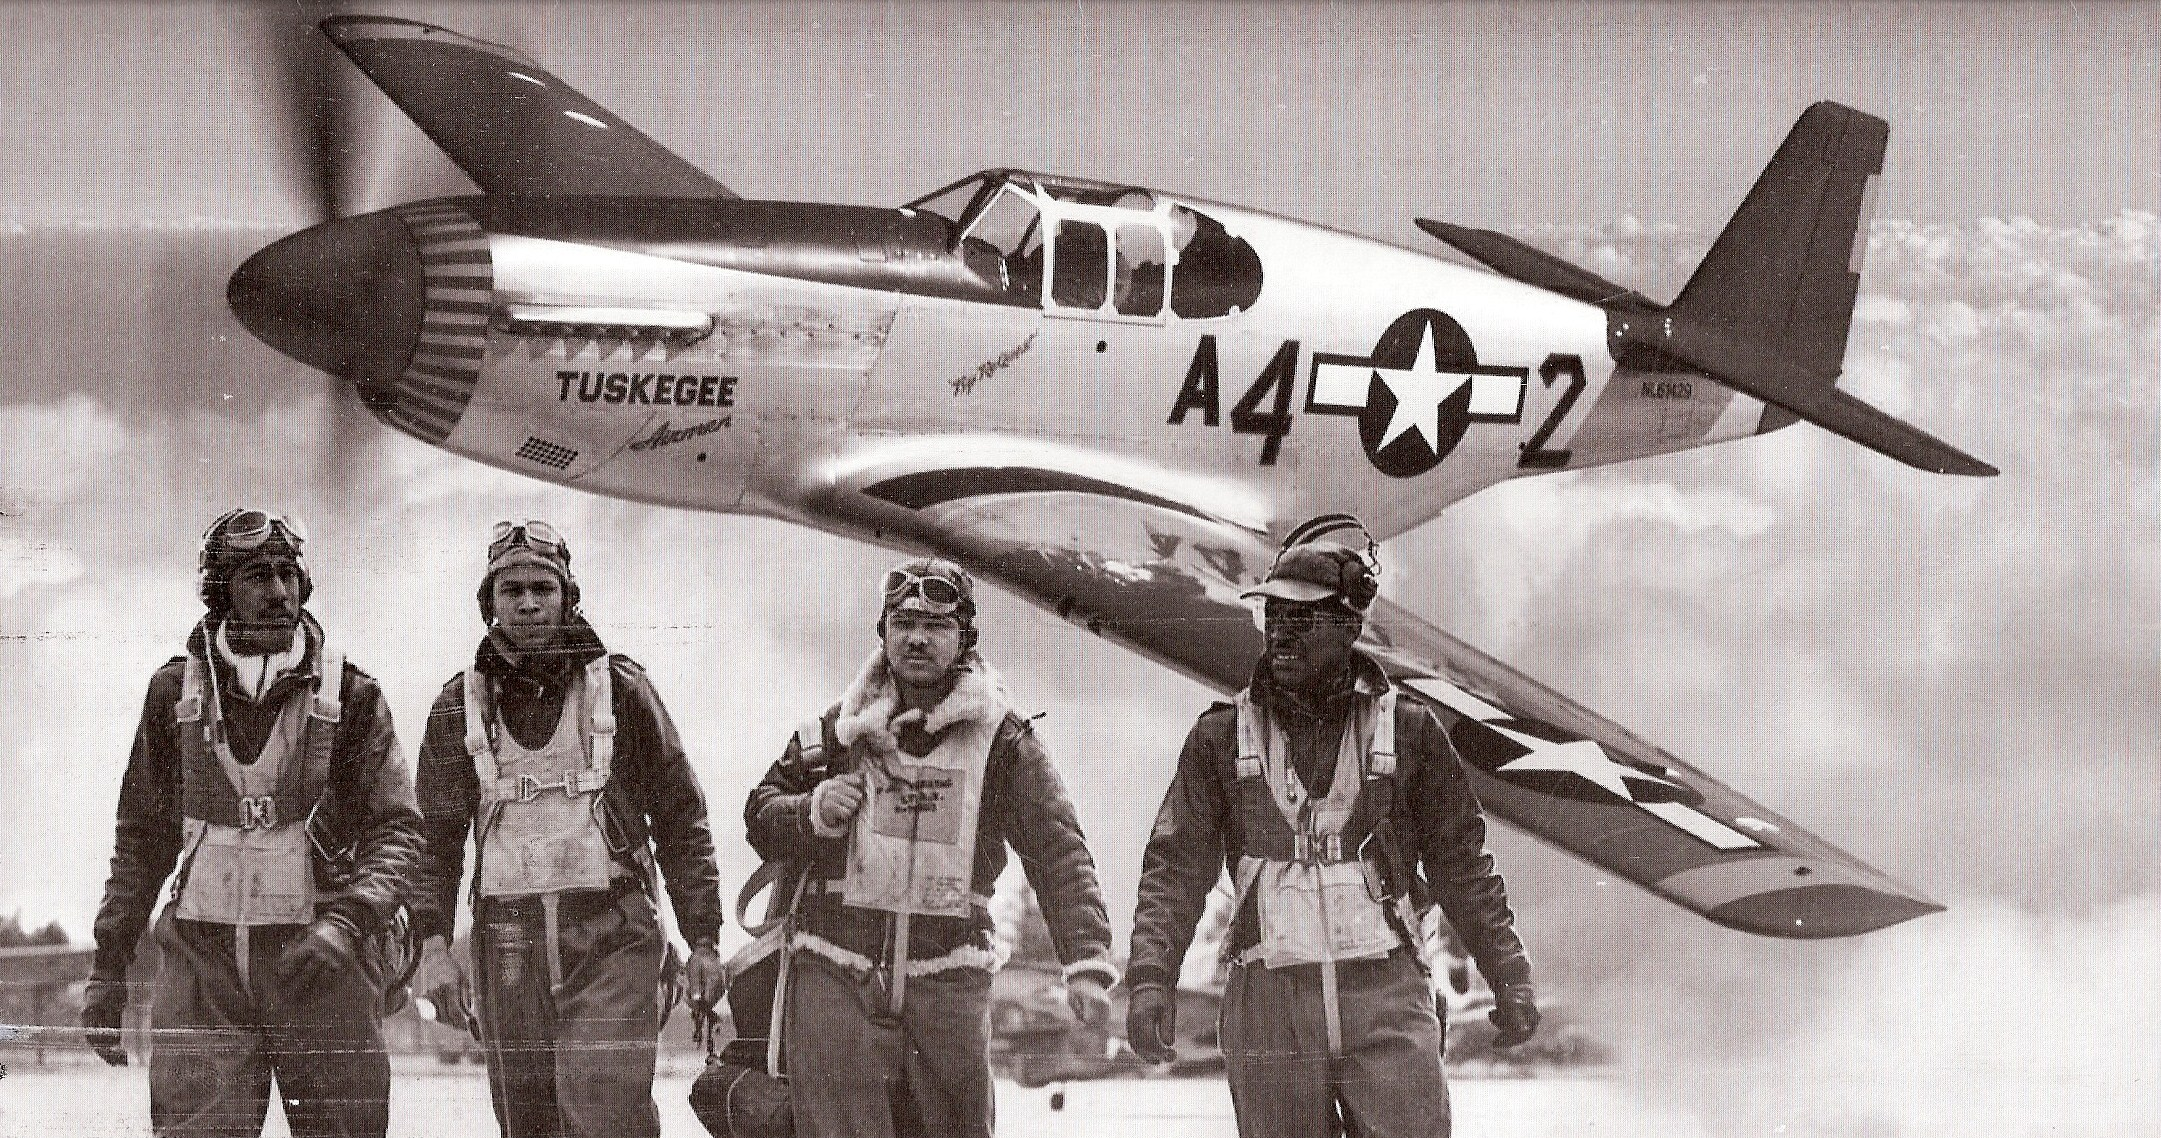 Tuskegee Airmen receive Congressional Gold Medal | Alabama Public Radio